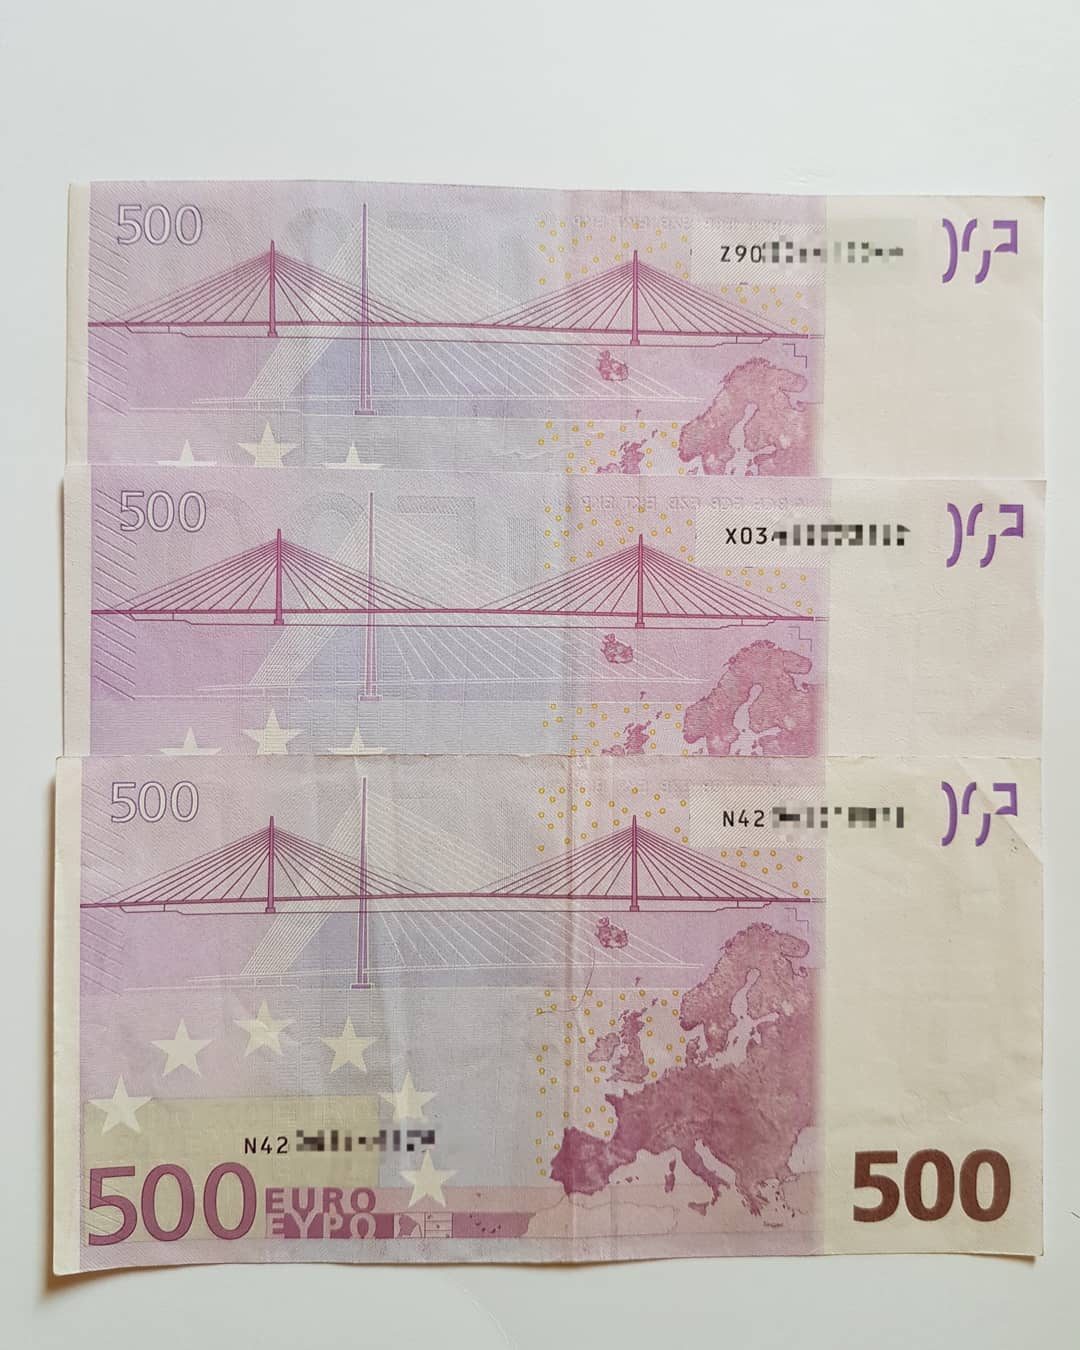 Buy best Quality Undetectable Counterfeit 500 Euros